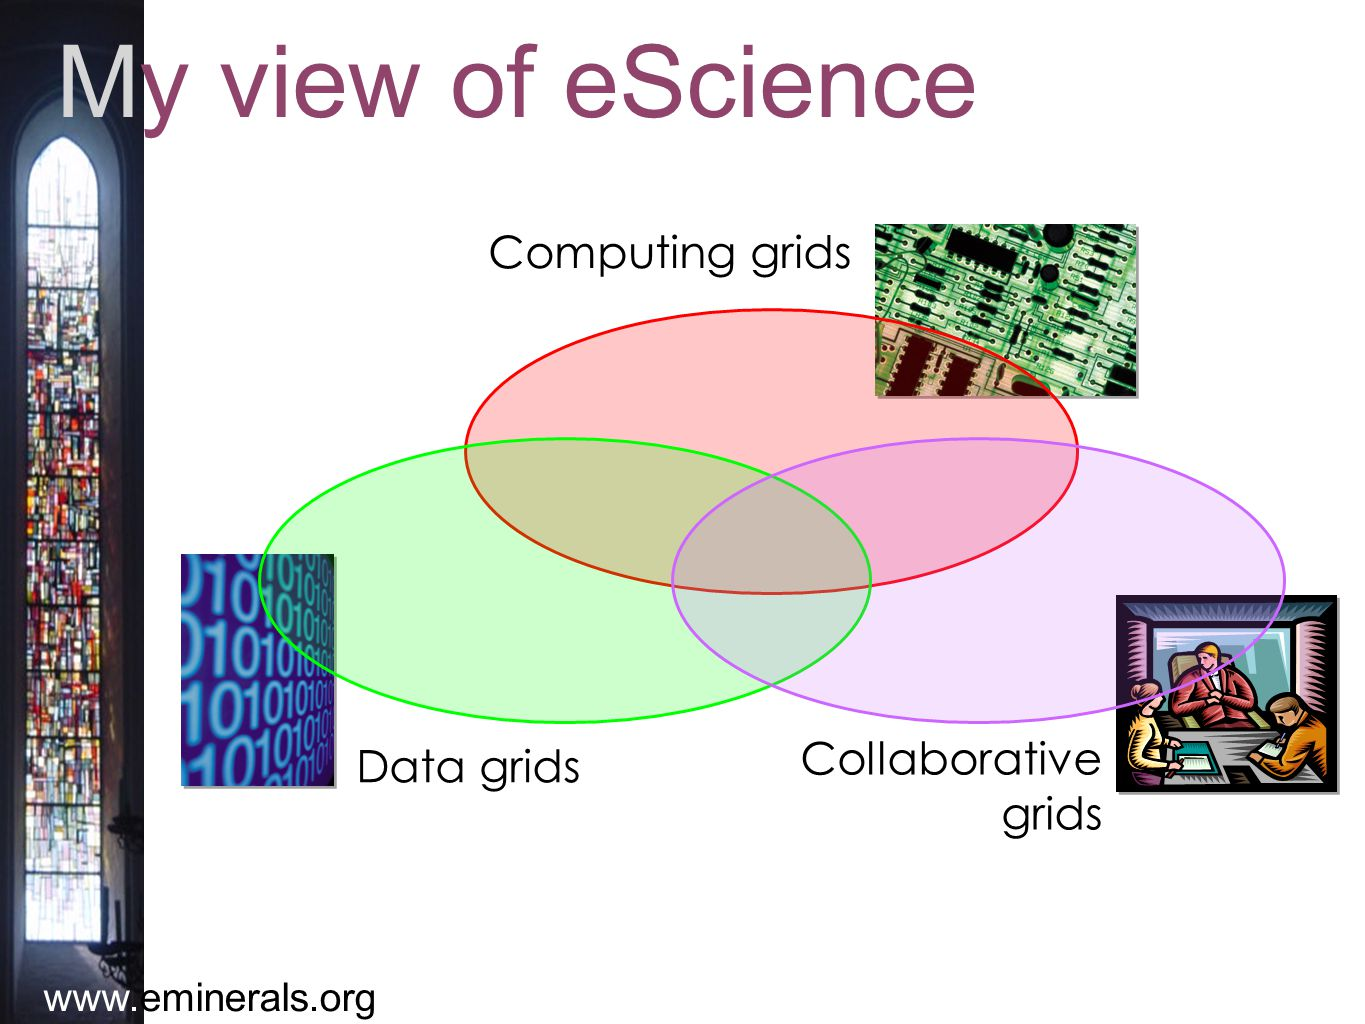 www.eminerals.org My view of eScience Computing grids Data grids Collaborative grids